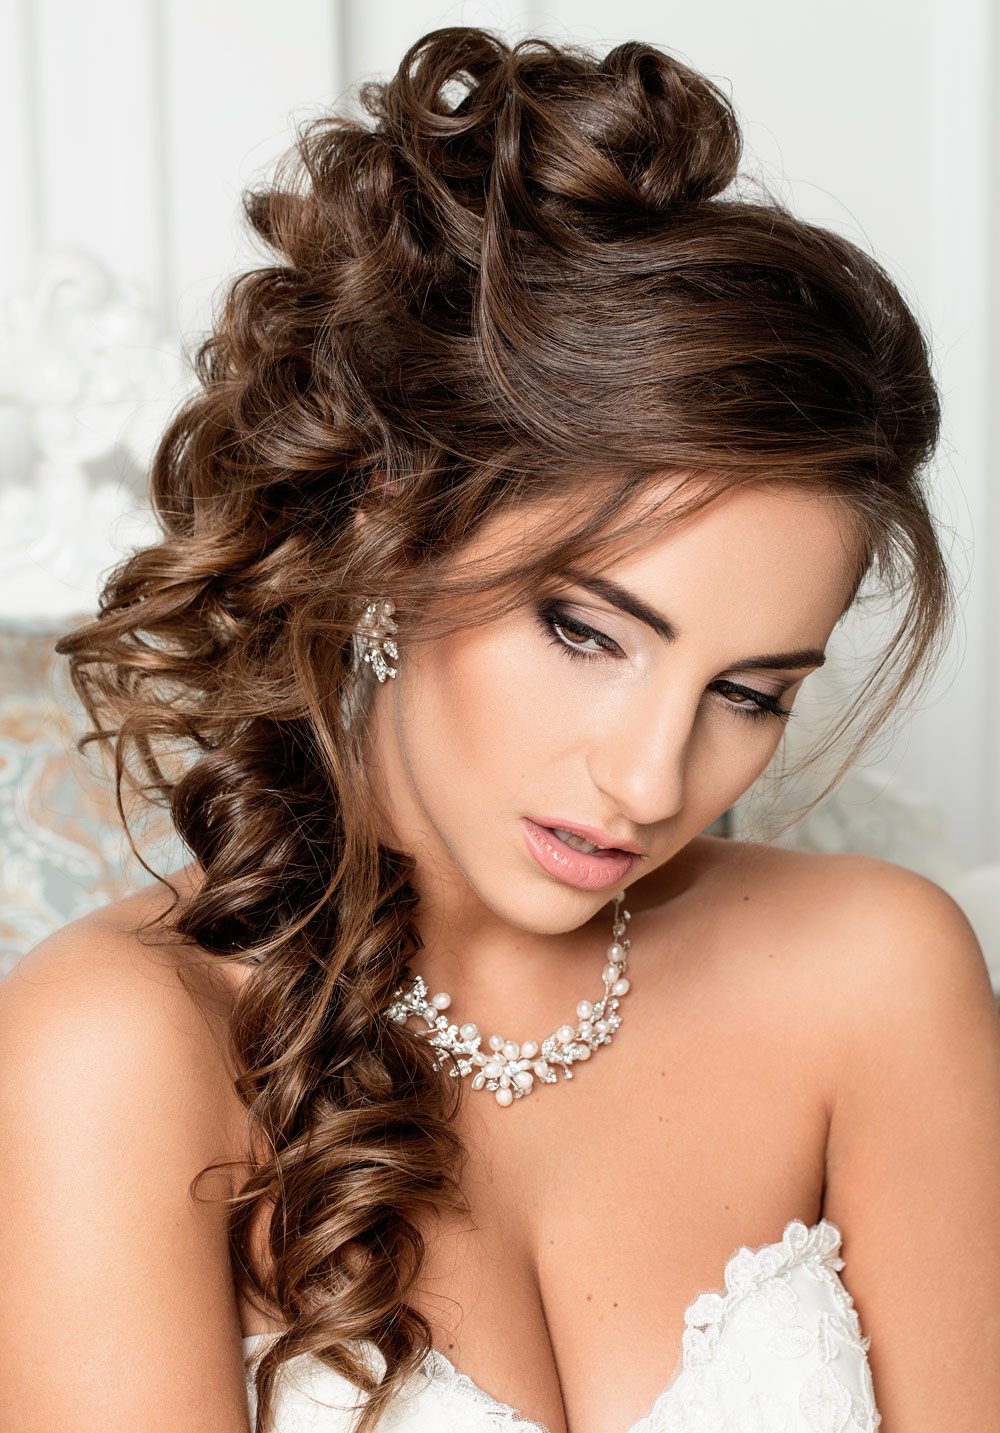 Hairstyle Bride Long Hair